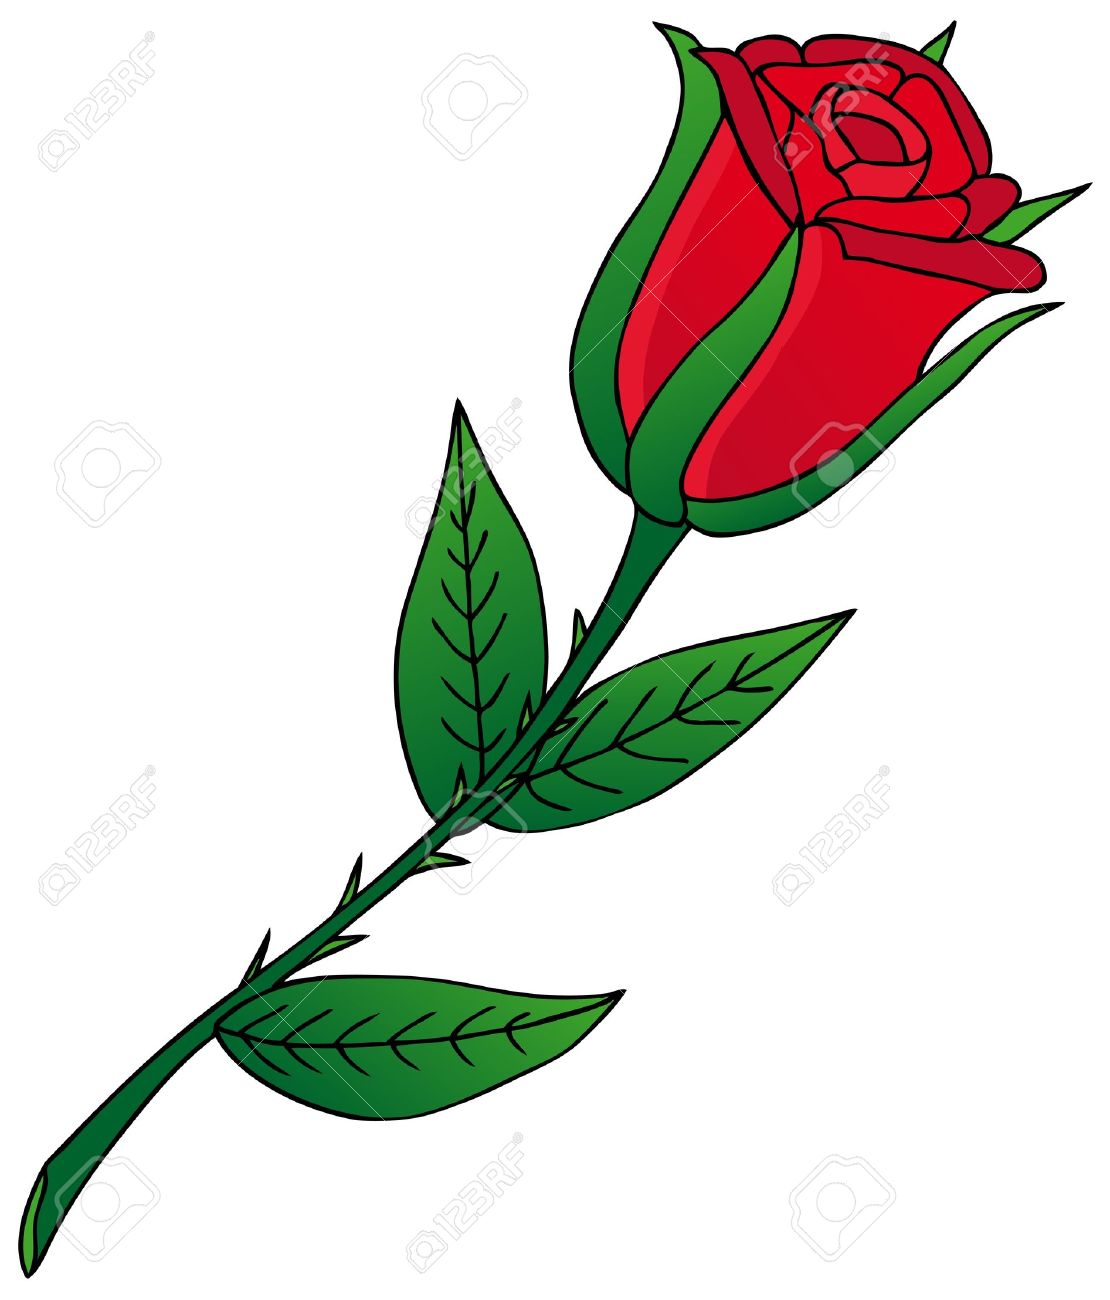 1110x1300 Rose Flower Cartoon Images Amp Stock Pictures. Royalty Free Rose